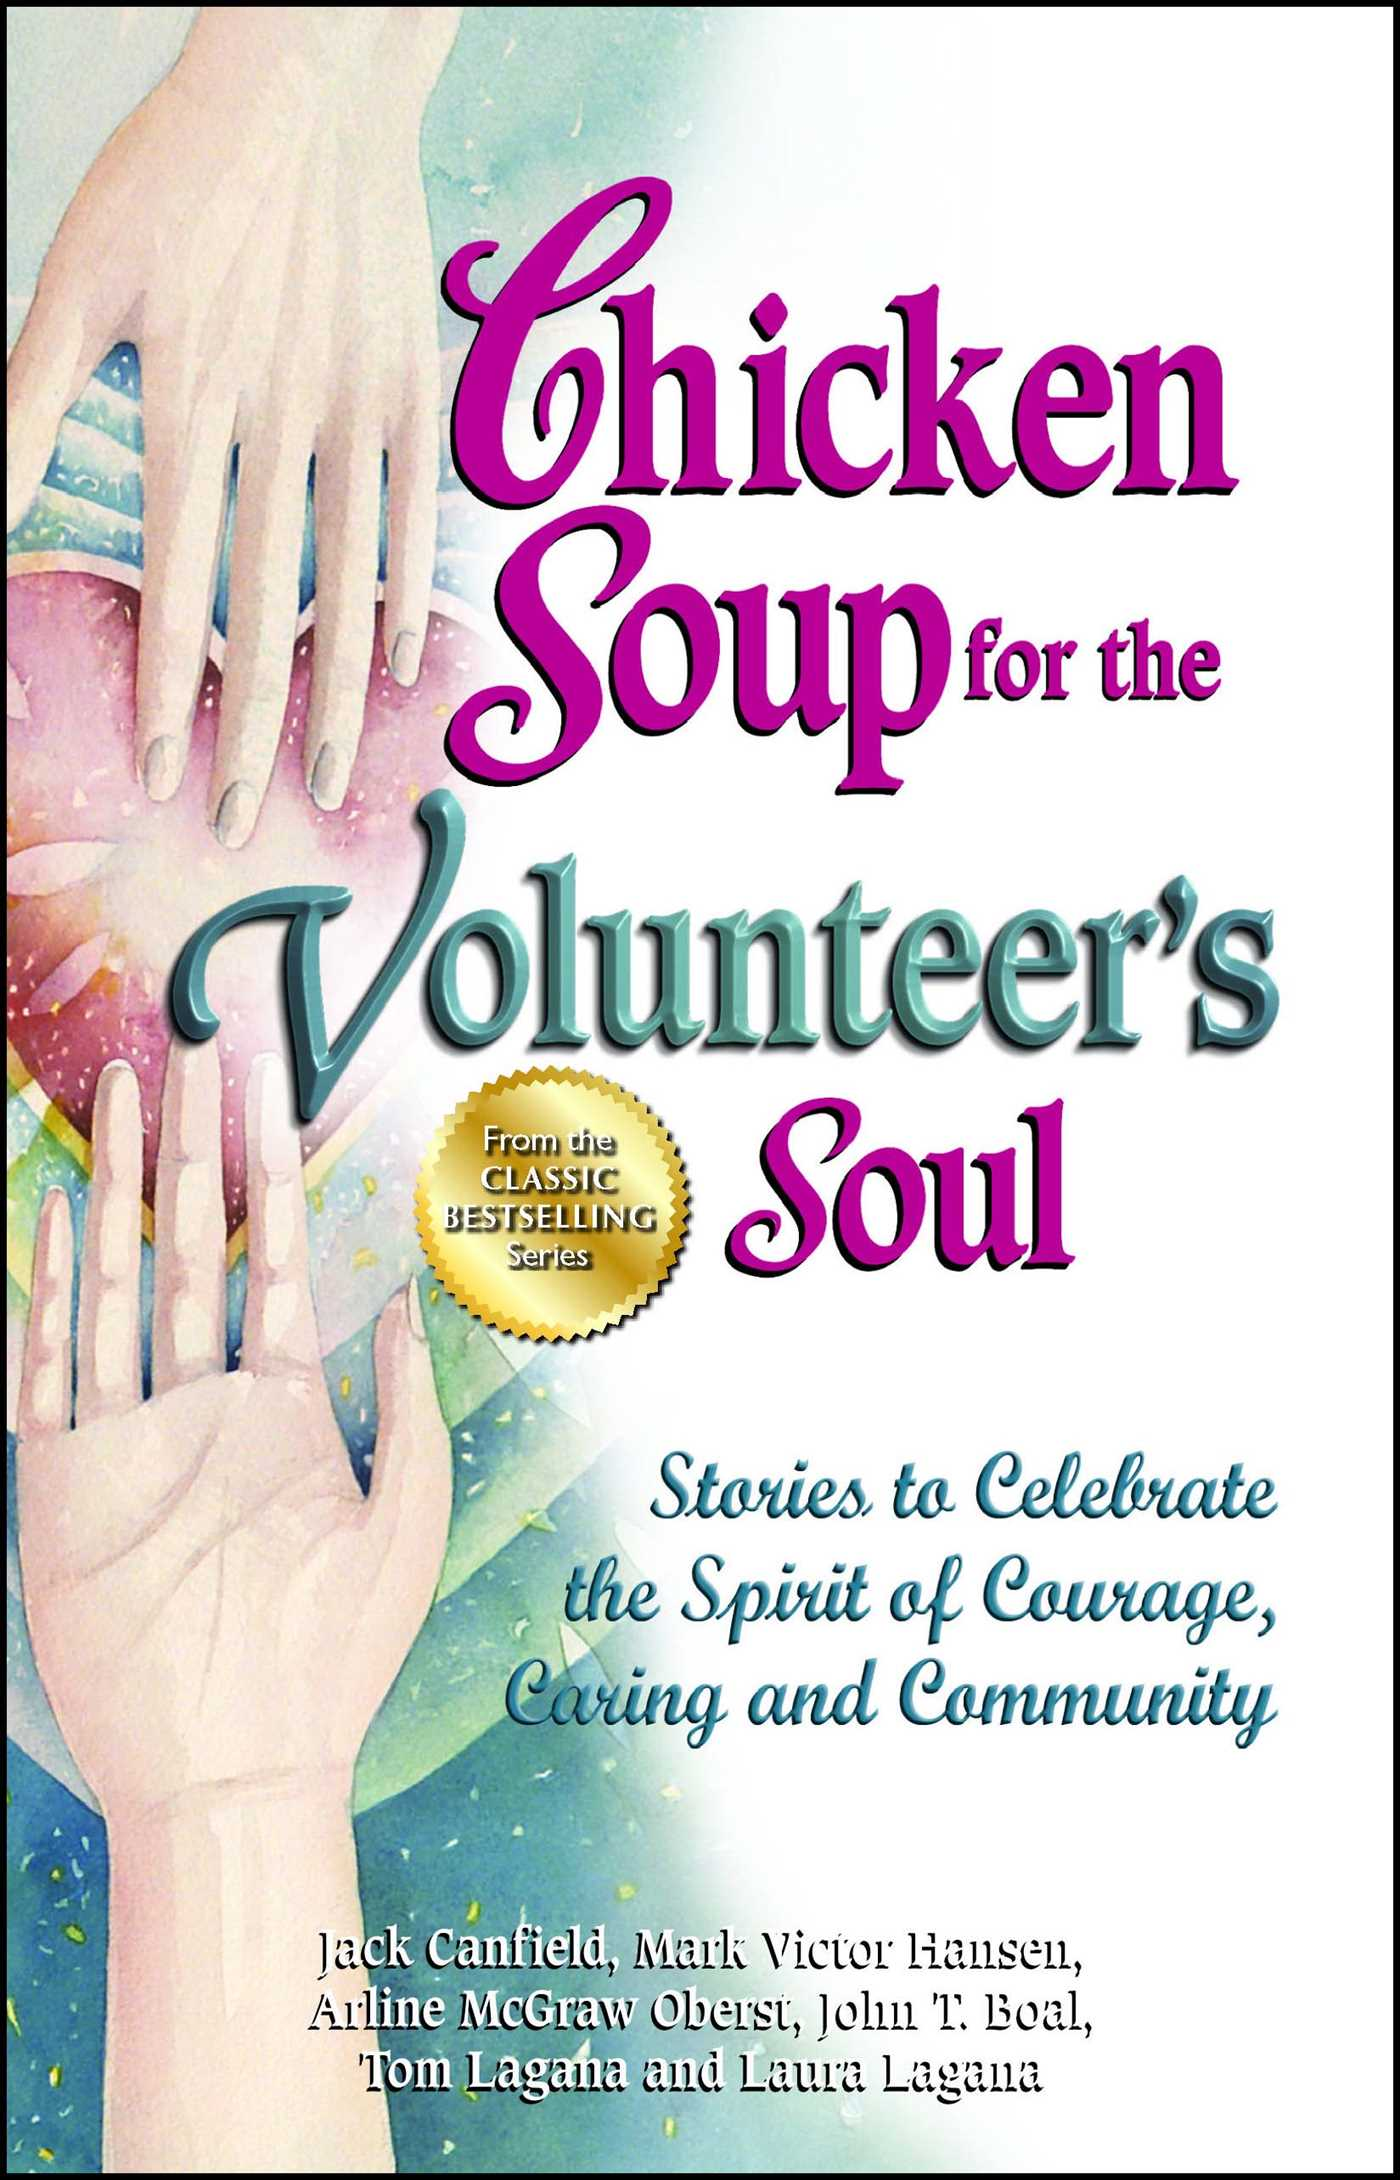 Chicken soup for the volunteers soul 9781623610012 hr